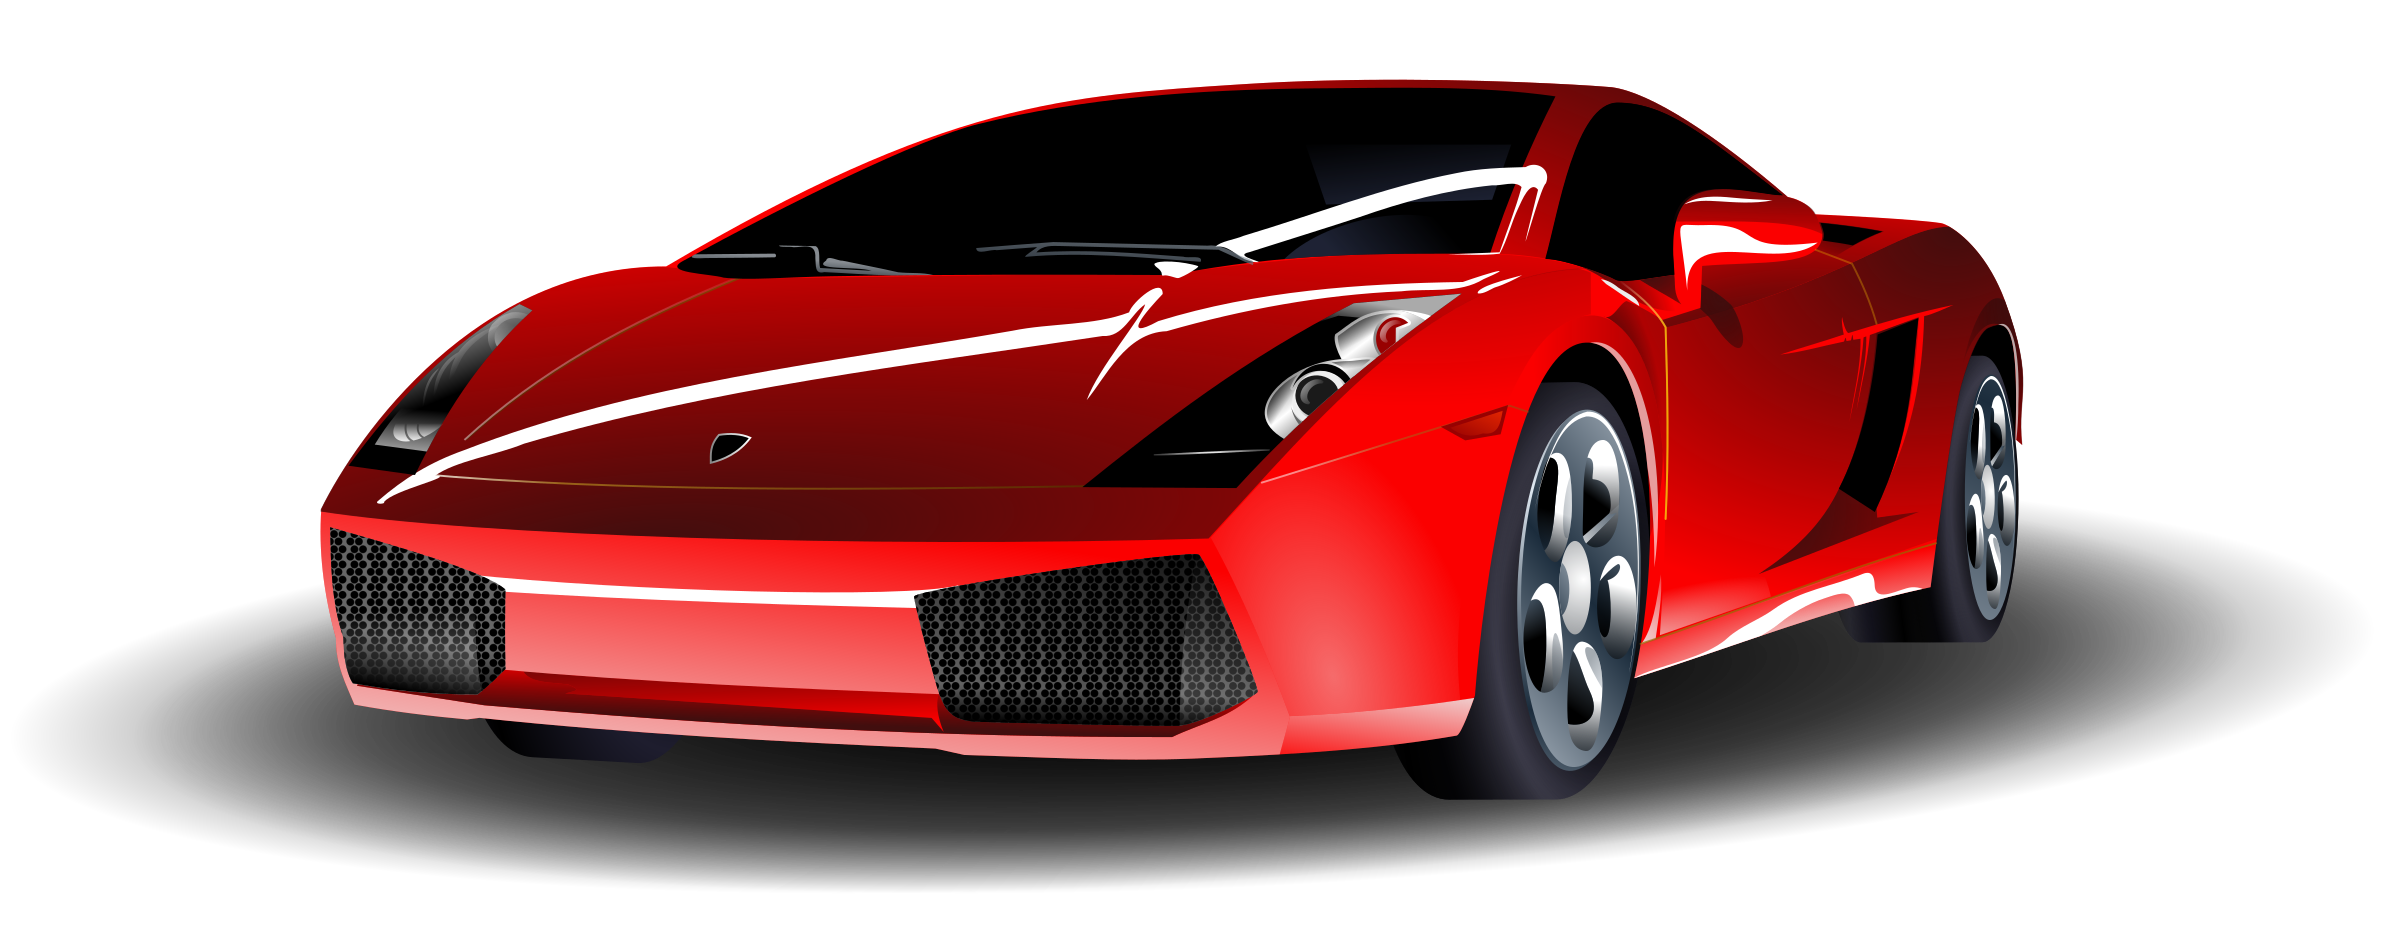 Red sports car png. Icons free and downloads